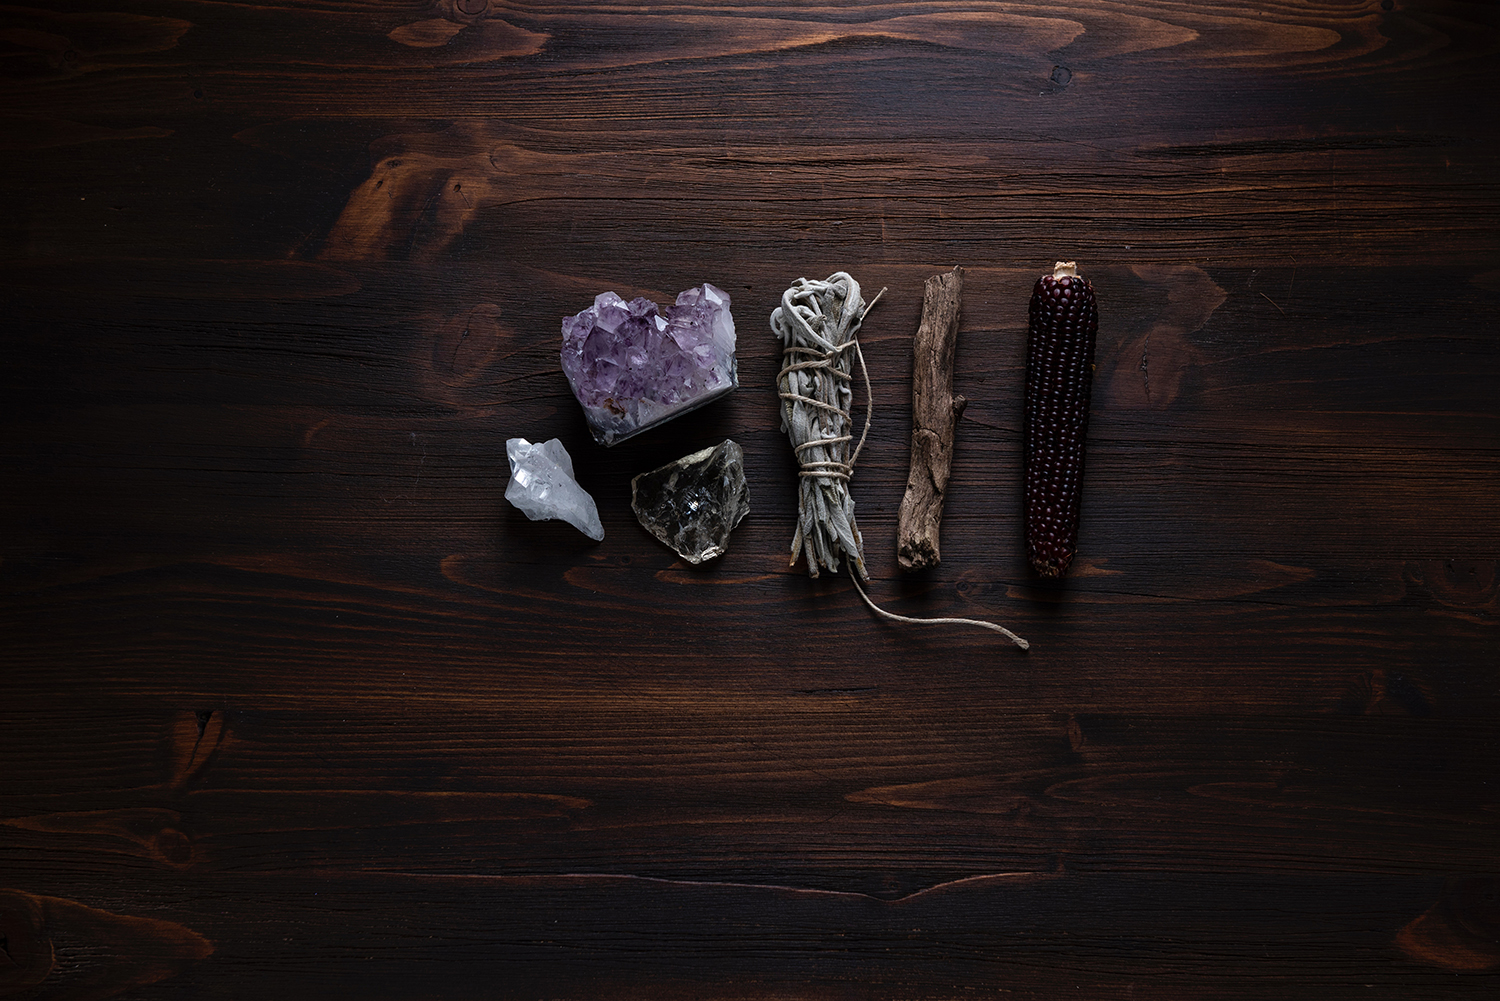 Witch Don't Kill My Vibe: Art of The Altar With Emily Mikaelah (Aug 28) teaches the art of creating sacred space, altar making, and working with spiritual allies.